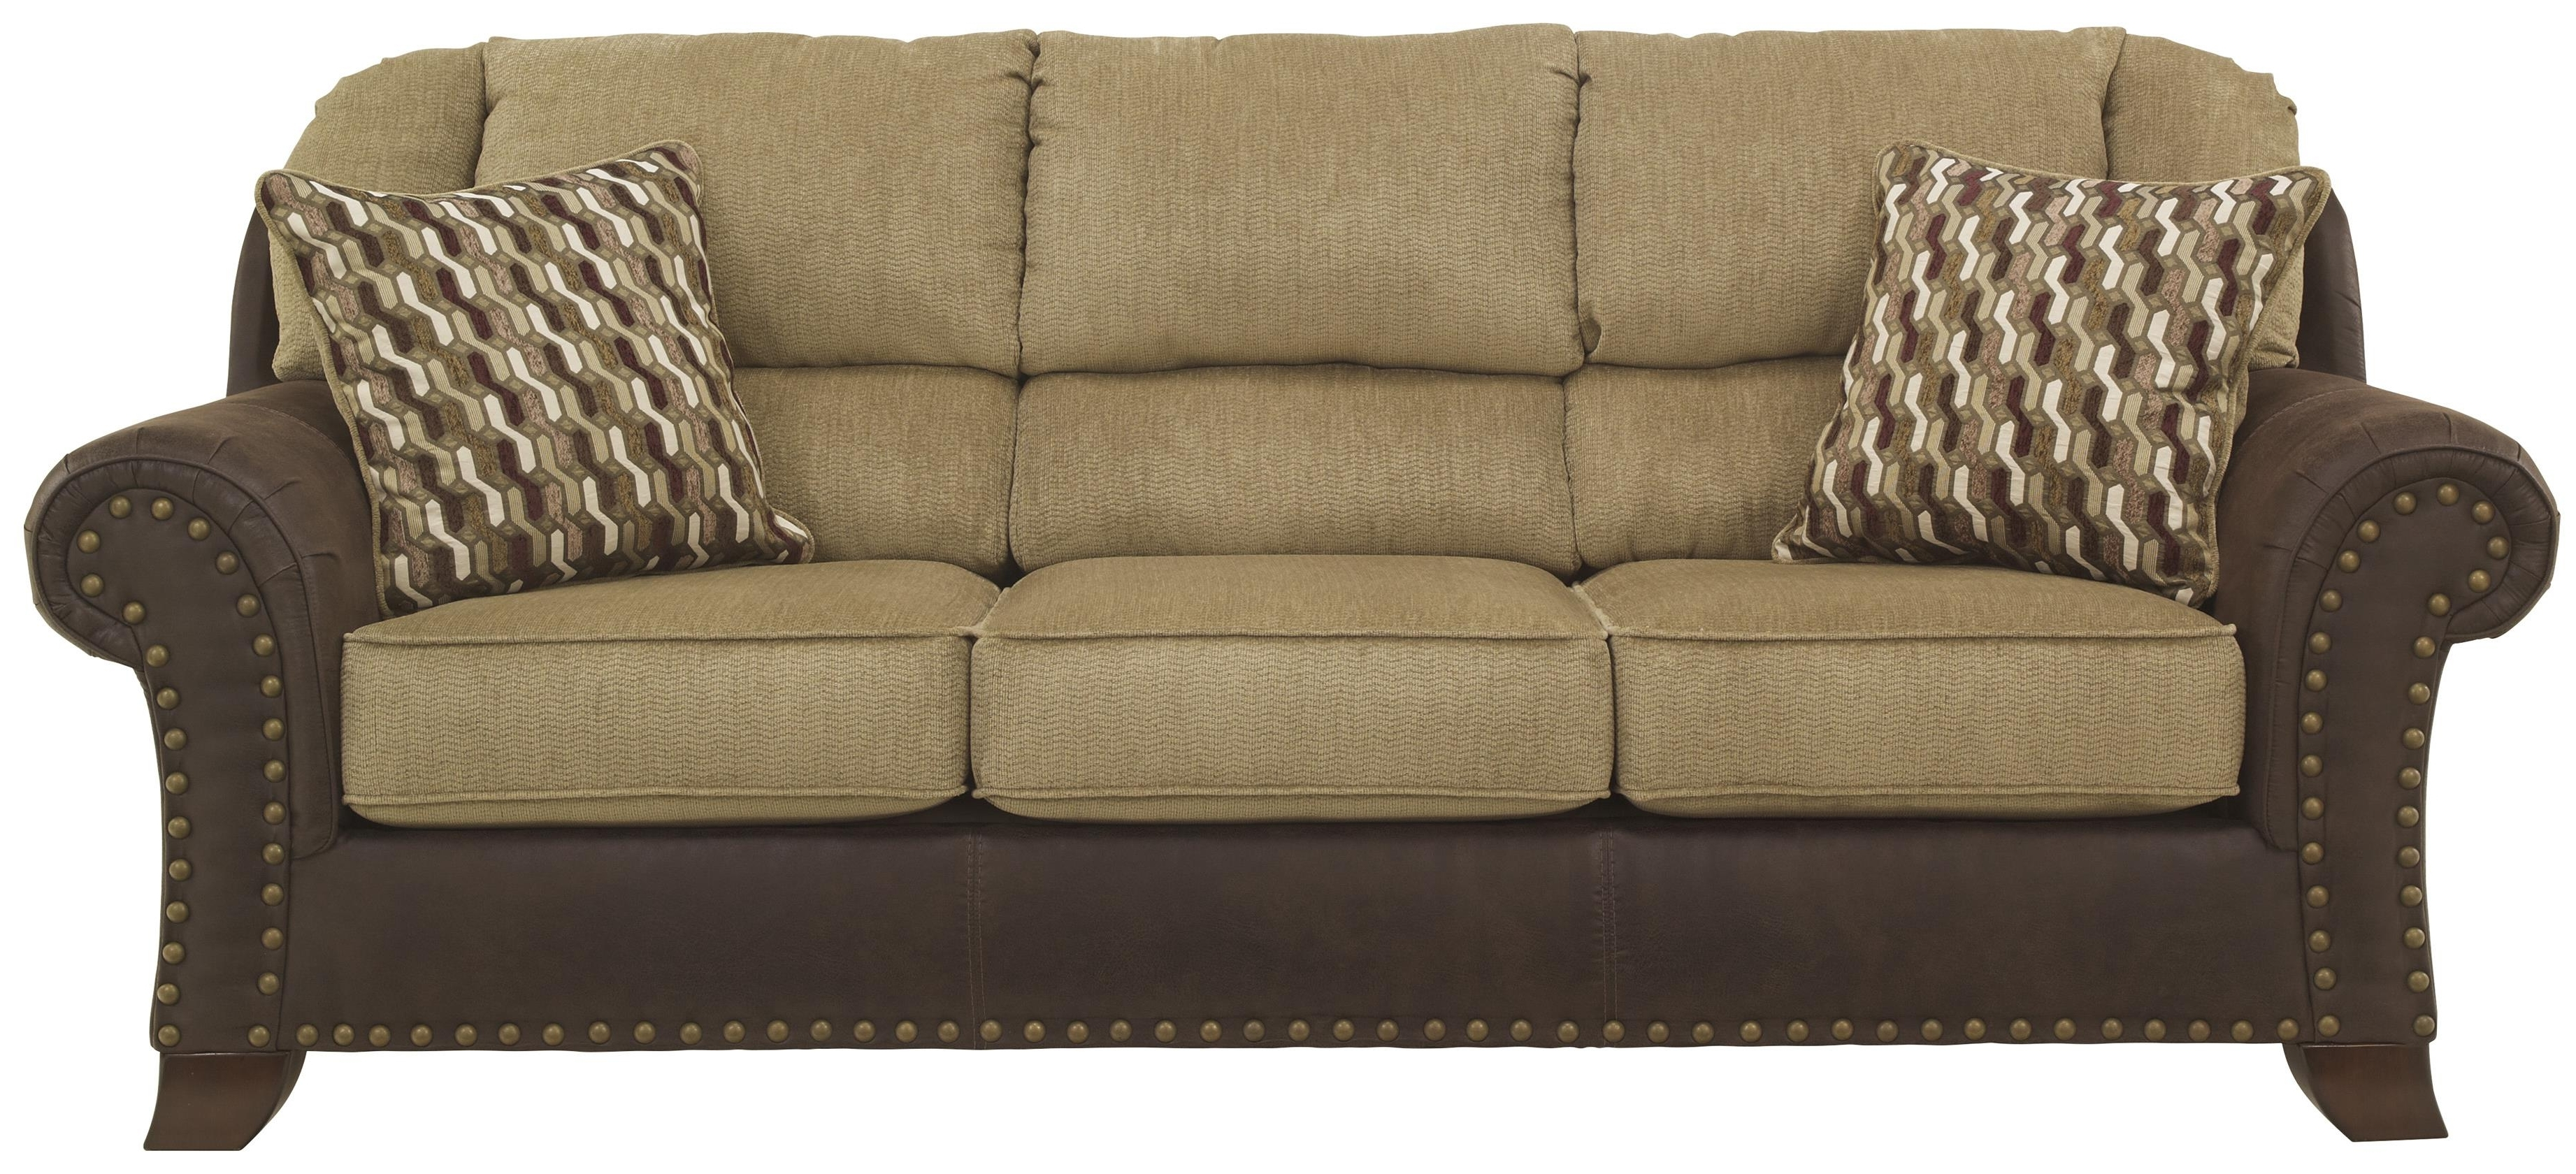 Two Tone Sofas With Popular Two Tone Sofa With Chenille Fabric/faux Leather Upholstery (View 11 of 15)